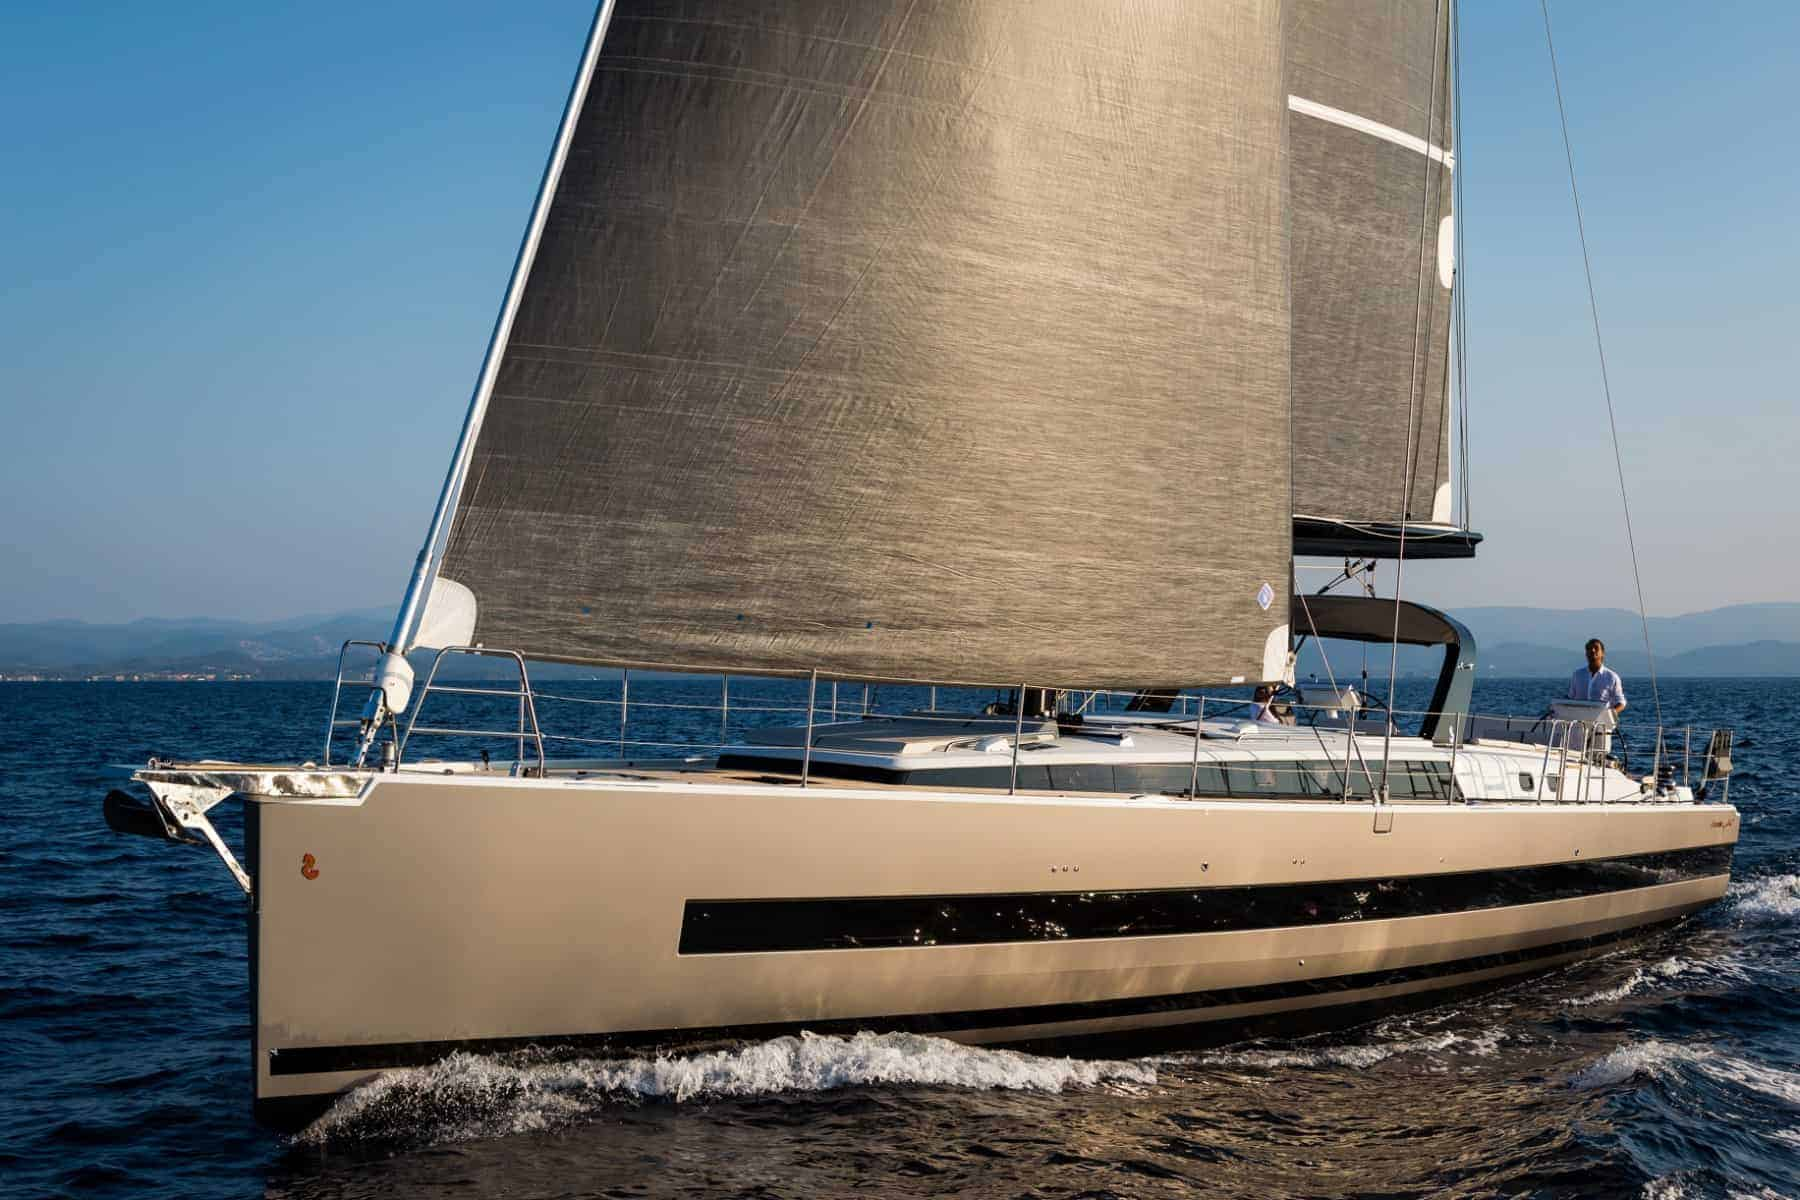 The Beneteau Oceanis Yacht 62 in action